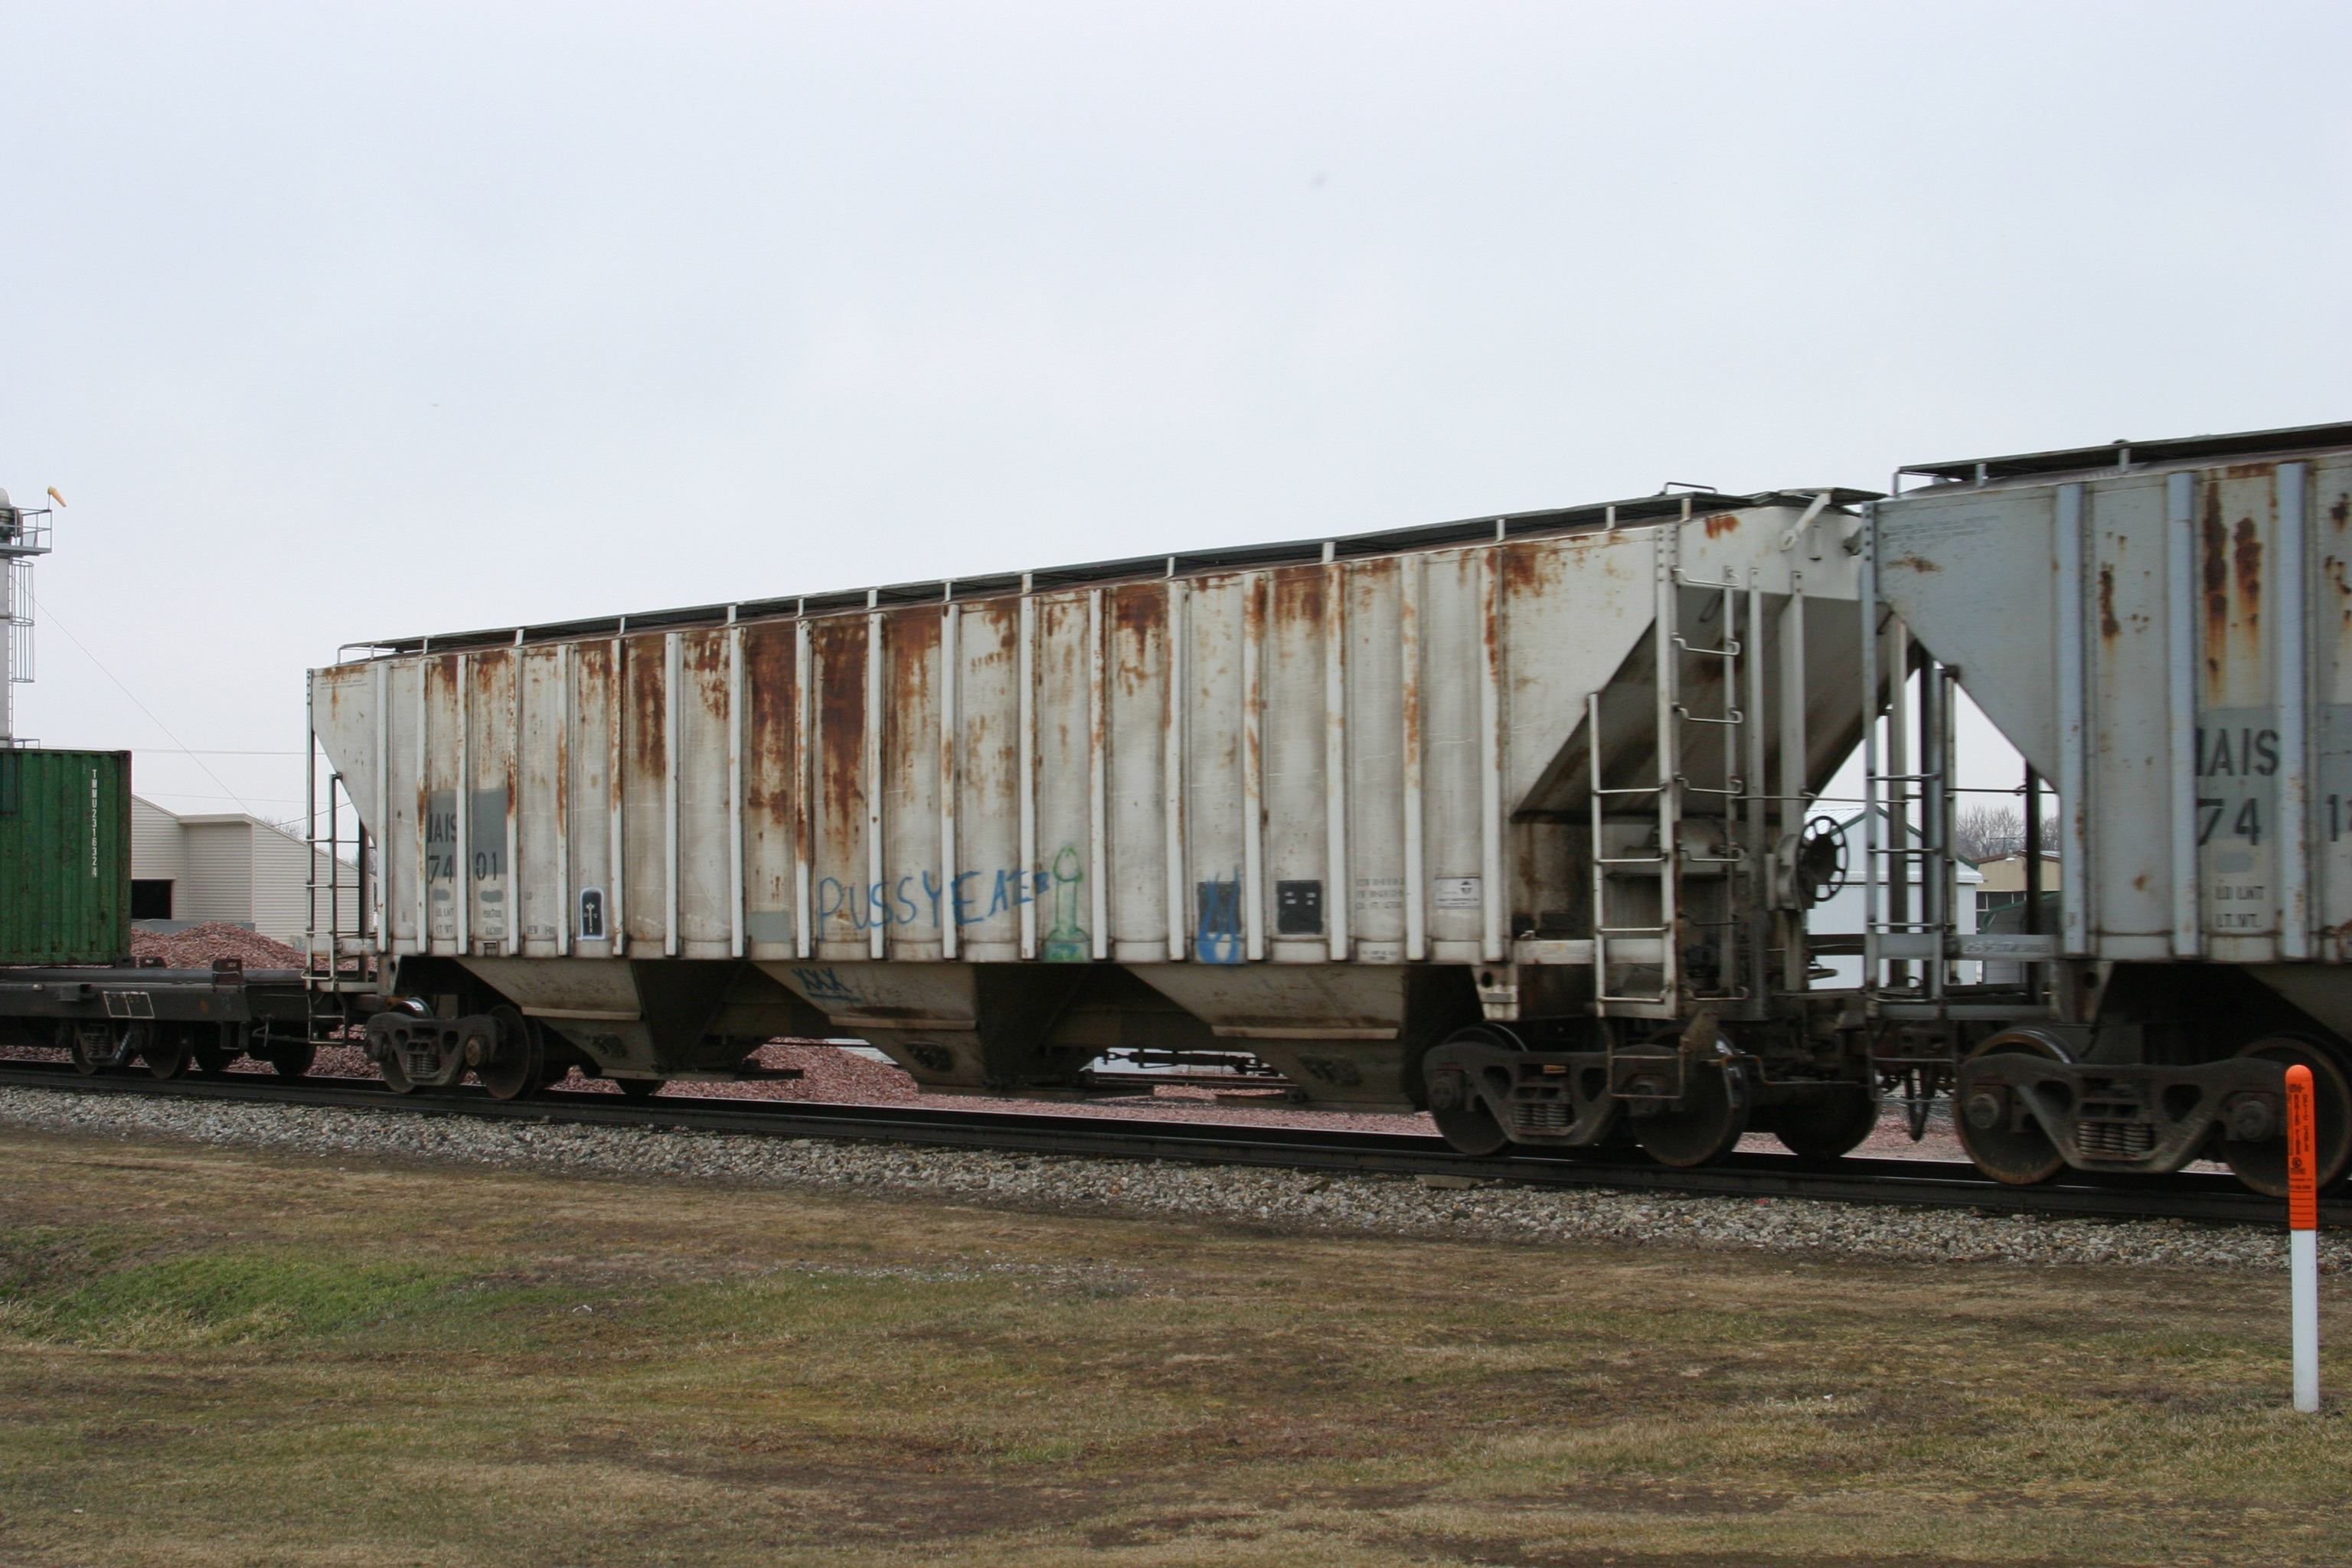 IAIS 7401 at Victor, IA, on 18-Mar-2005